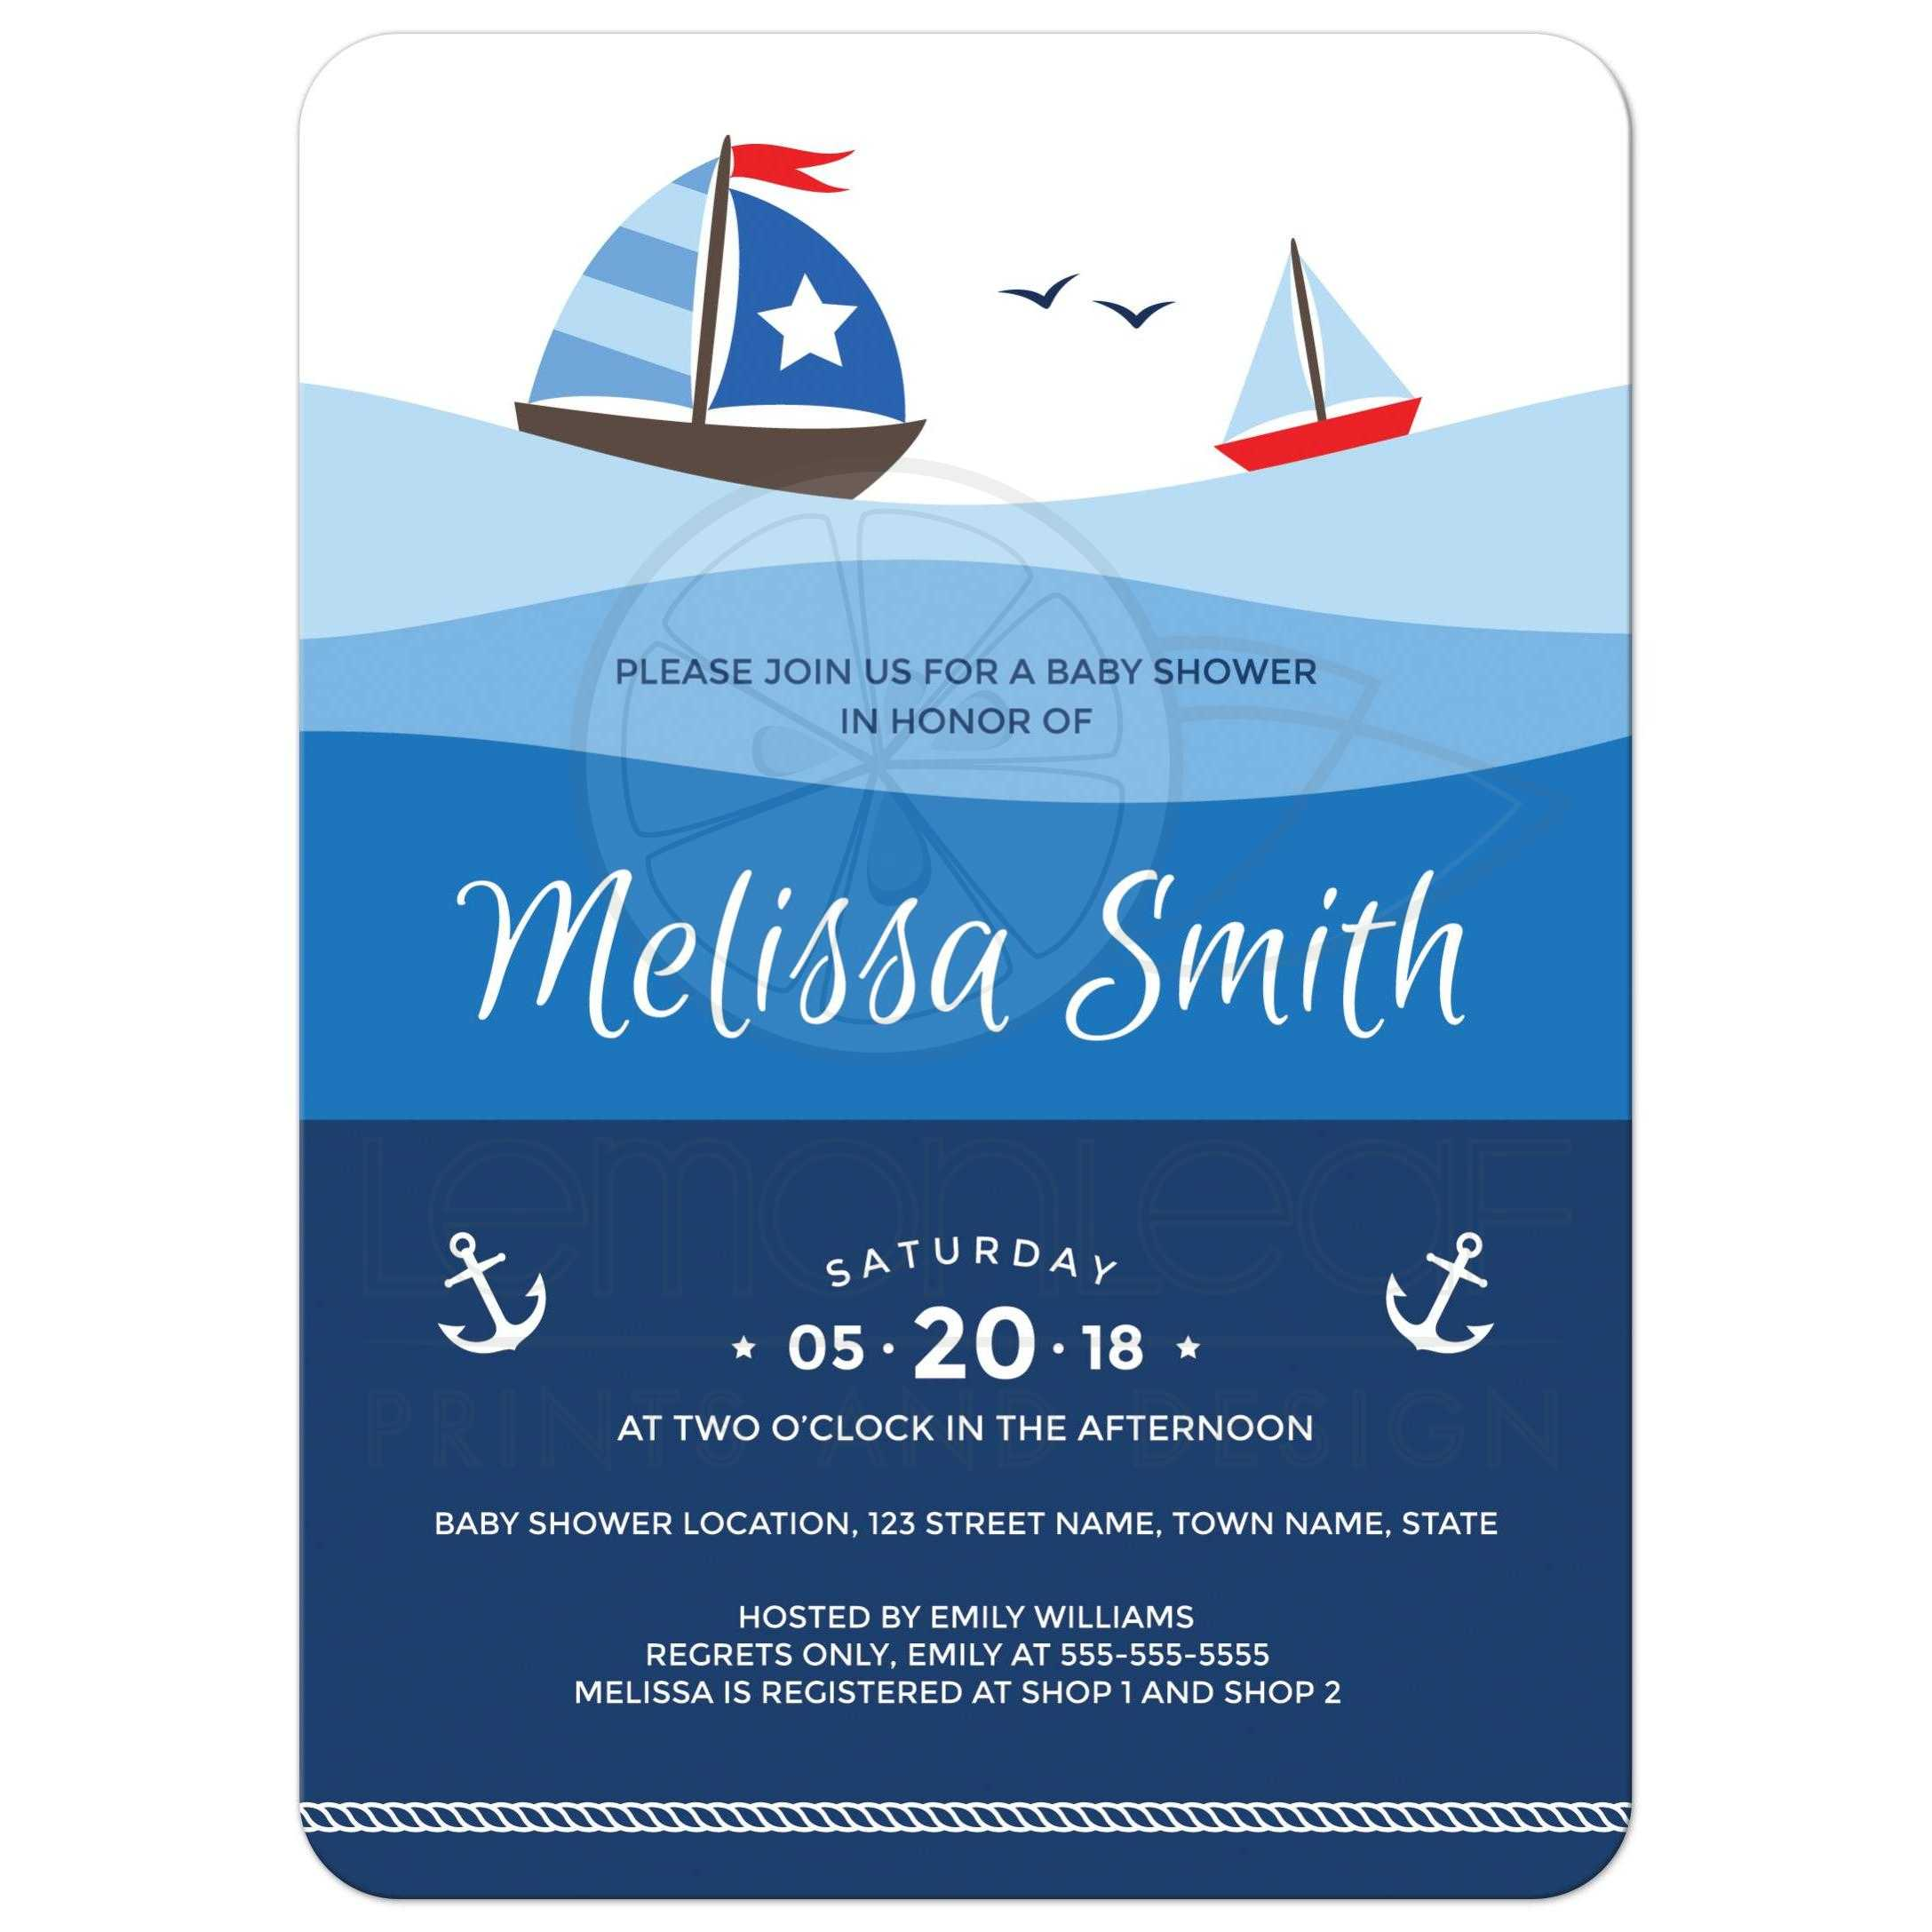 Gallant Sailboat Baby Shower Invitation Couples Anchor Sailboats On Ombre Ocean Waves Baby Shower Invitations Nautical Med Girl Nautical Baby Shower Invitations Rope Border Nautical Baby Shower Invita invitations Nautical Baby Shower Invitations